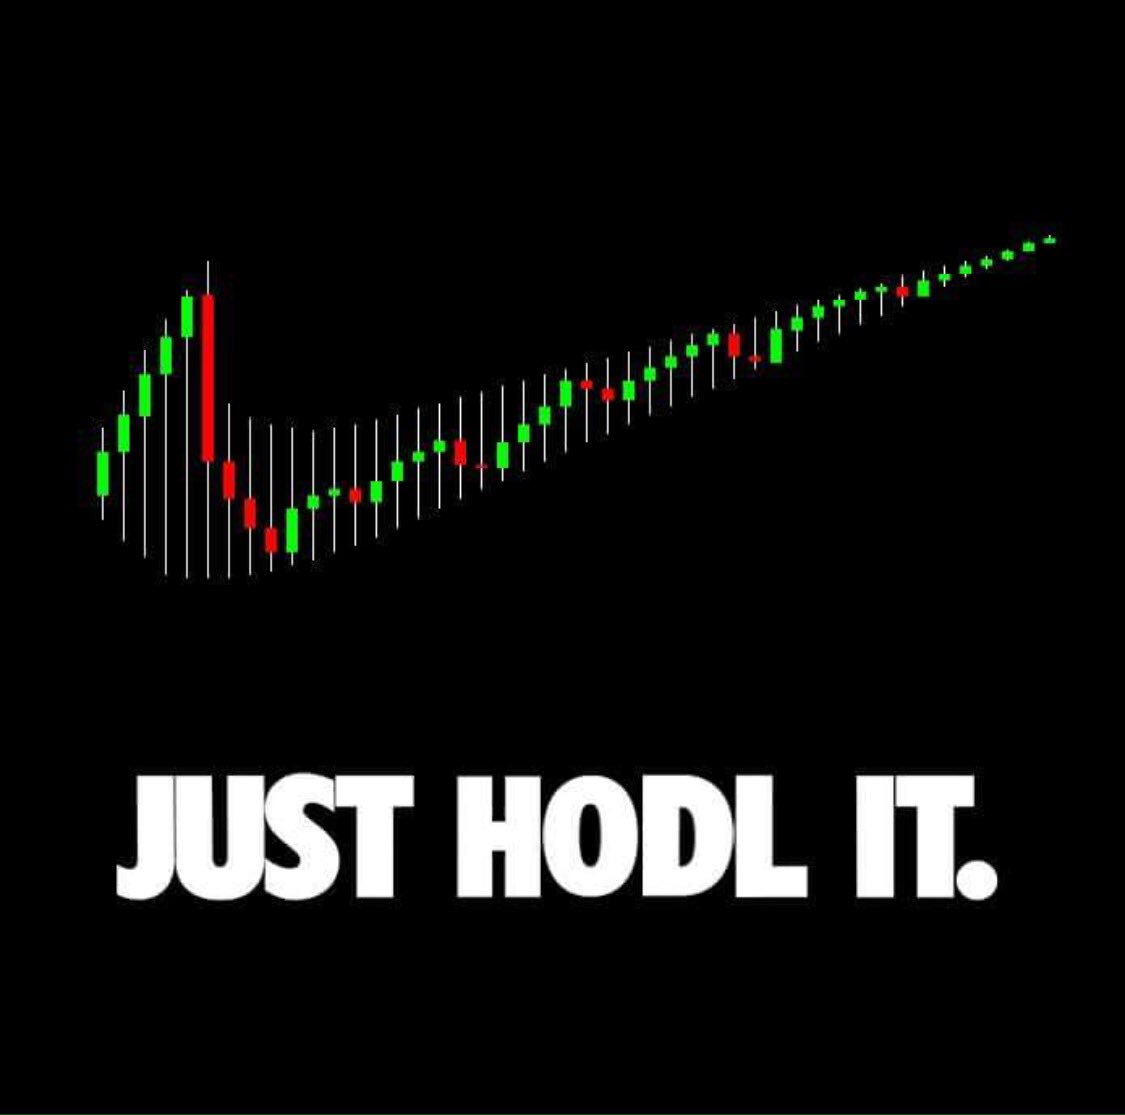 Two great memes this morning. #Bitcoin $6,000 https://t.co/rbEs0wAfyn